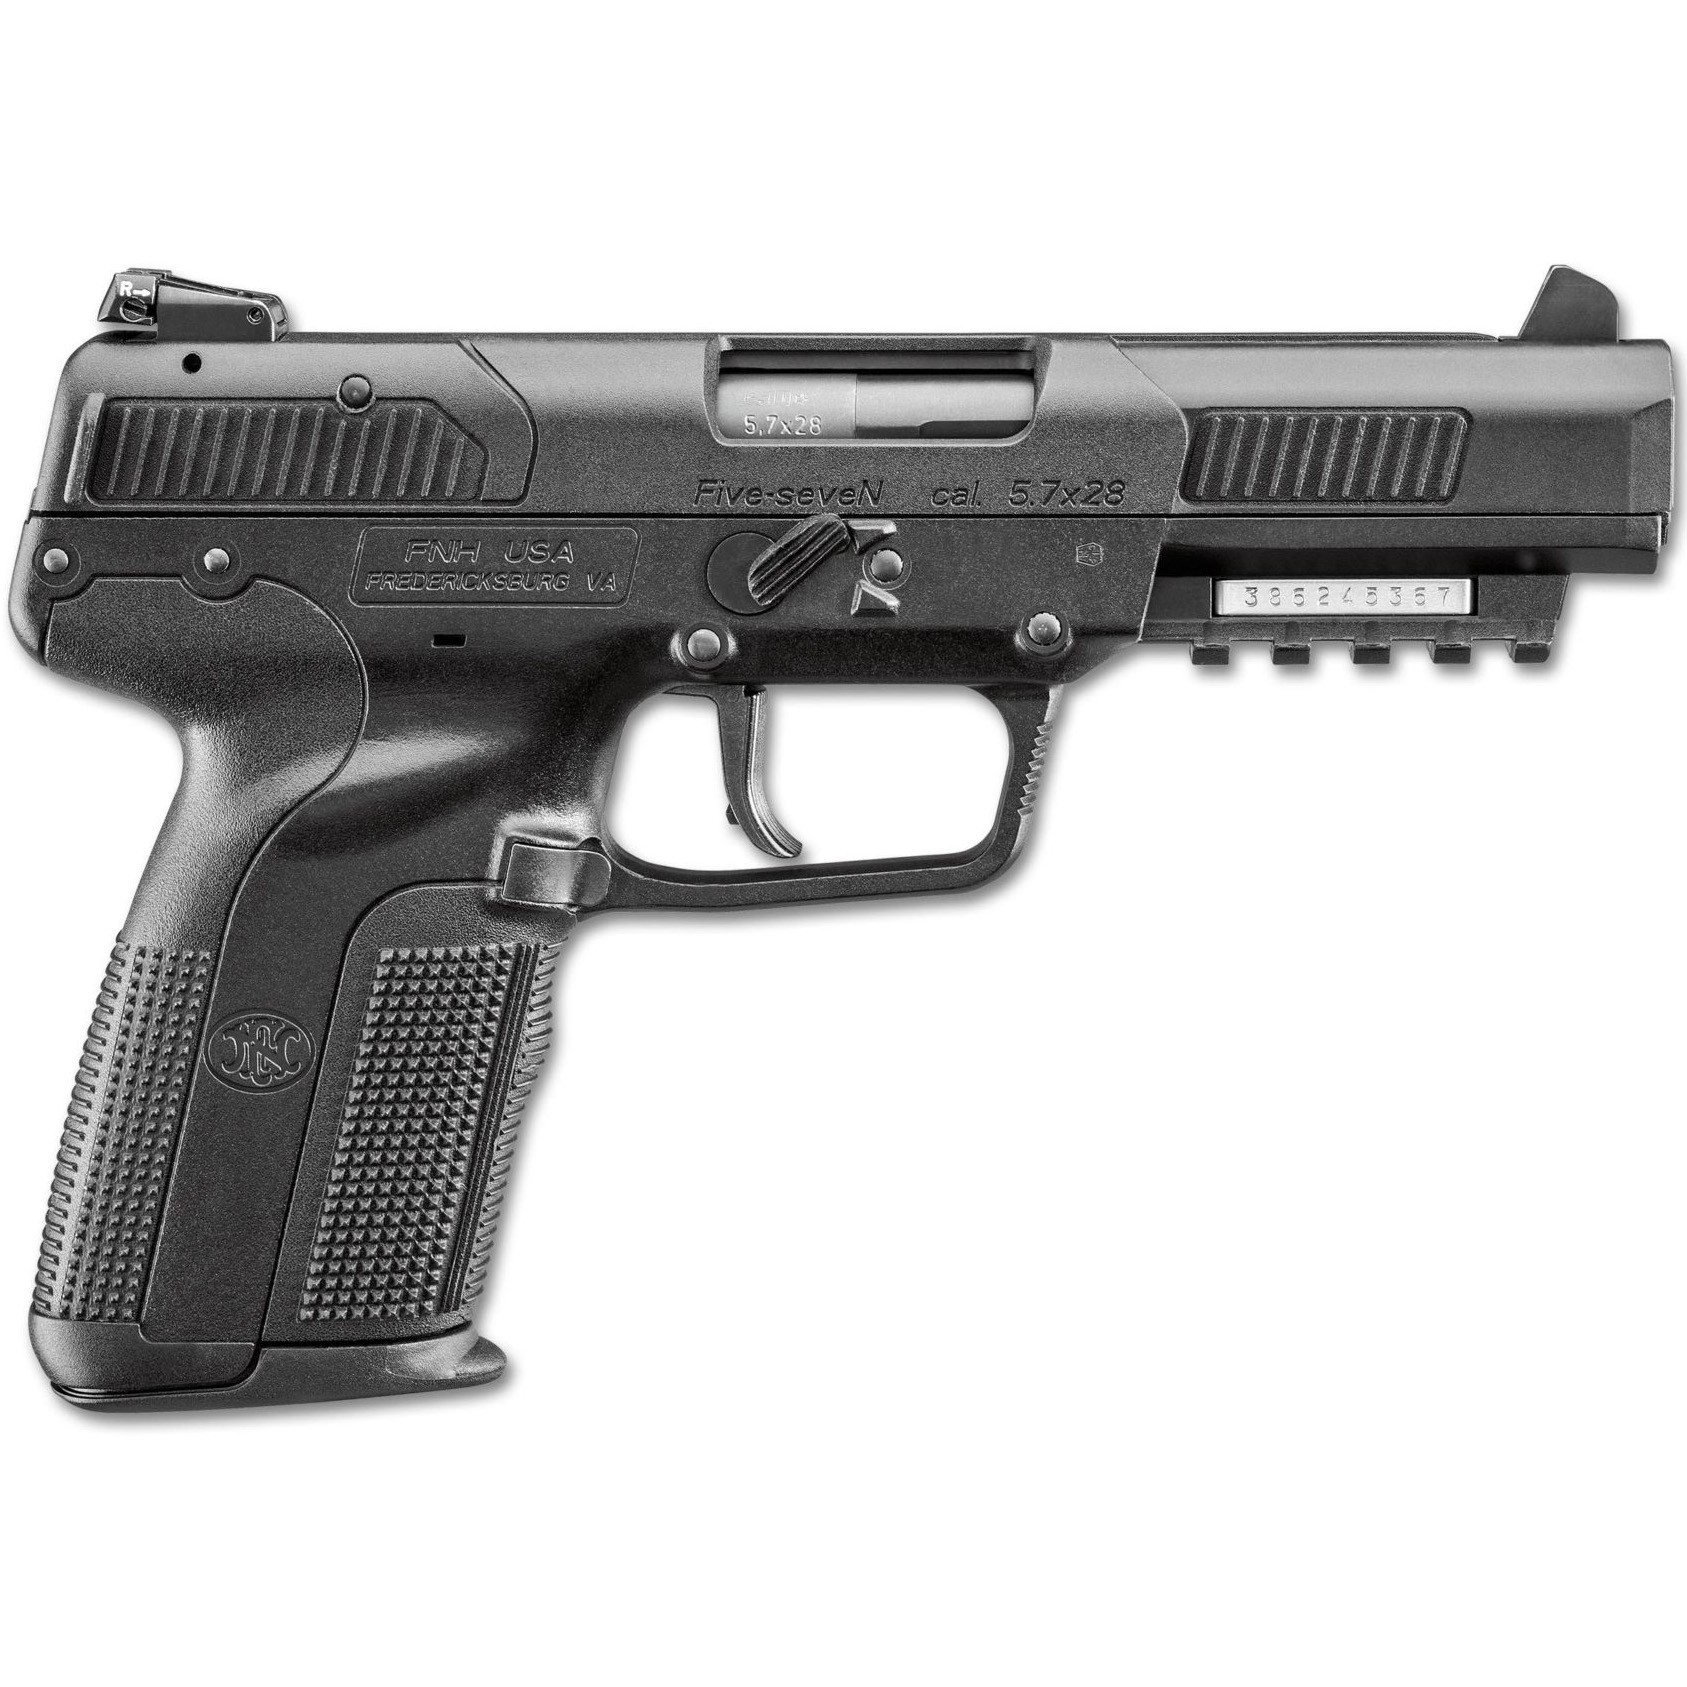 FN Herstal Five-seveN 5.7x28mm